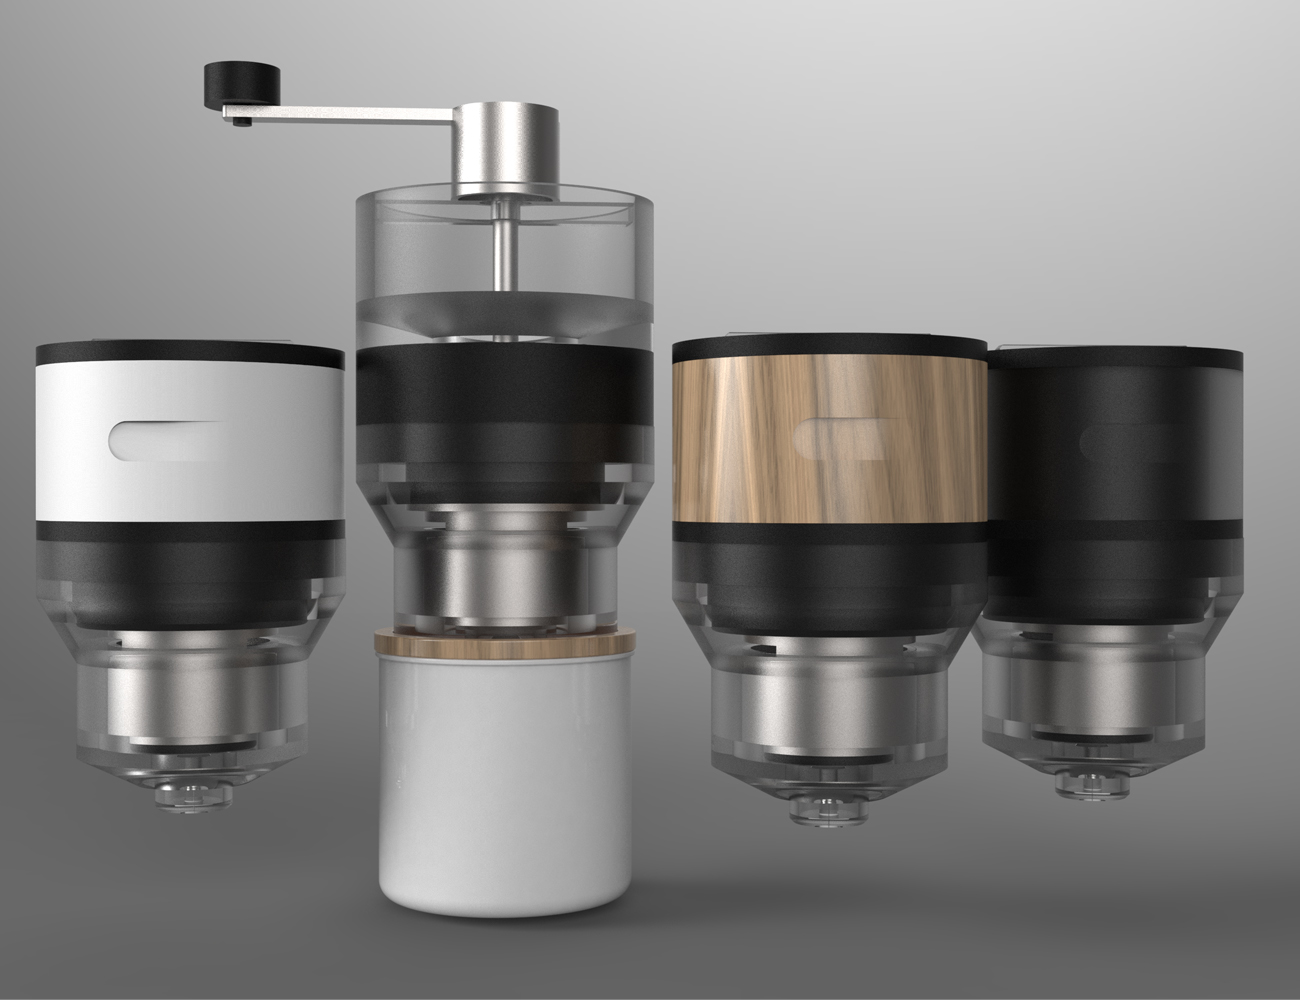 Build Your Own Portable Coffee Maker at Home, at Work -- Anywhere!